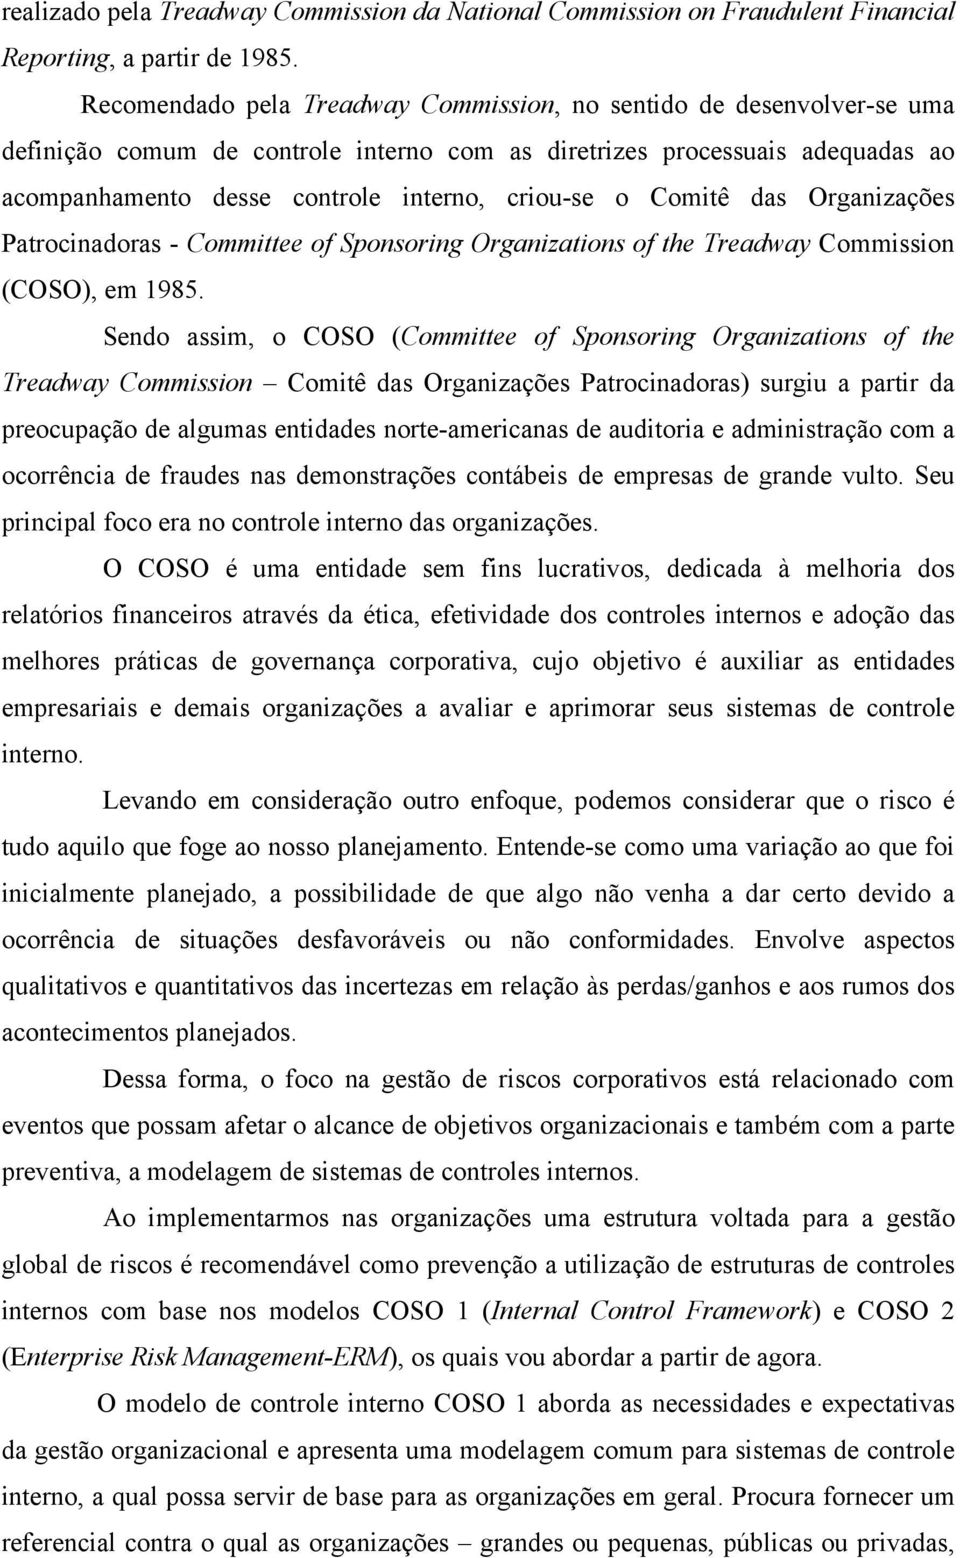 Comitê das Organizações Patrocinadoras - Committee of Sponsoring Organizations of the Treadway Commission (COSO), em 1985.